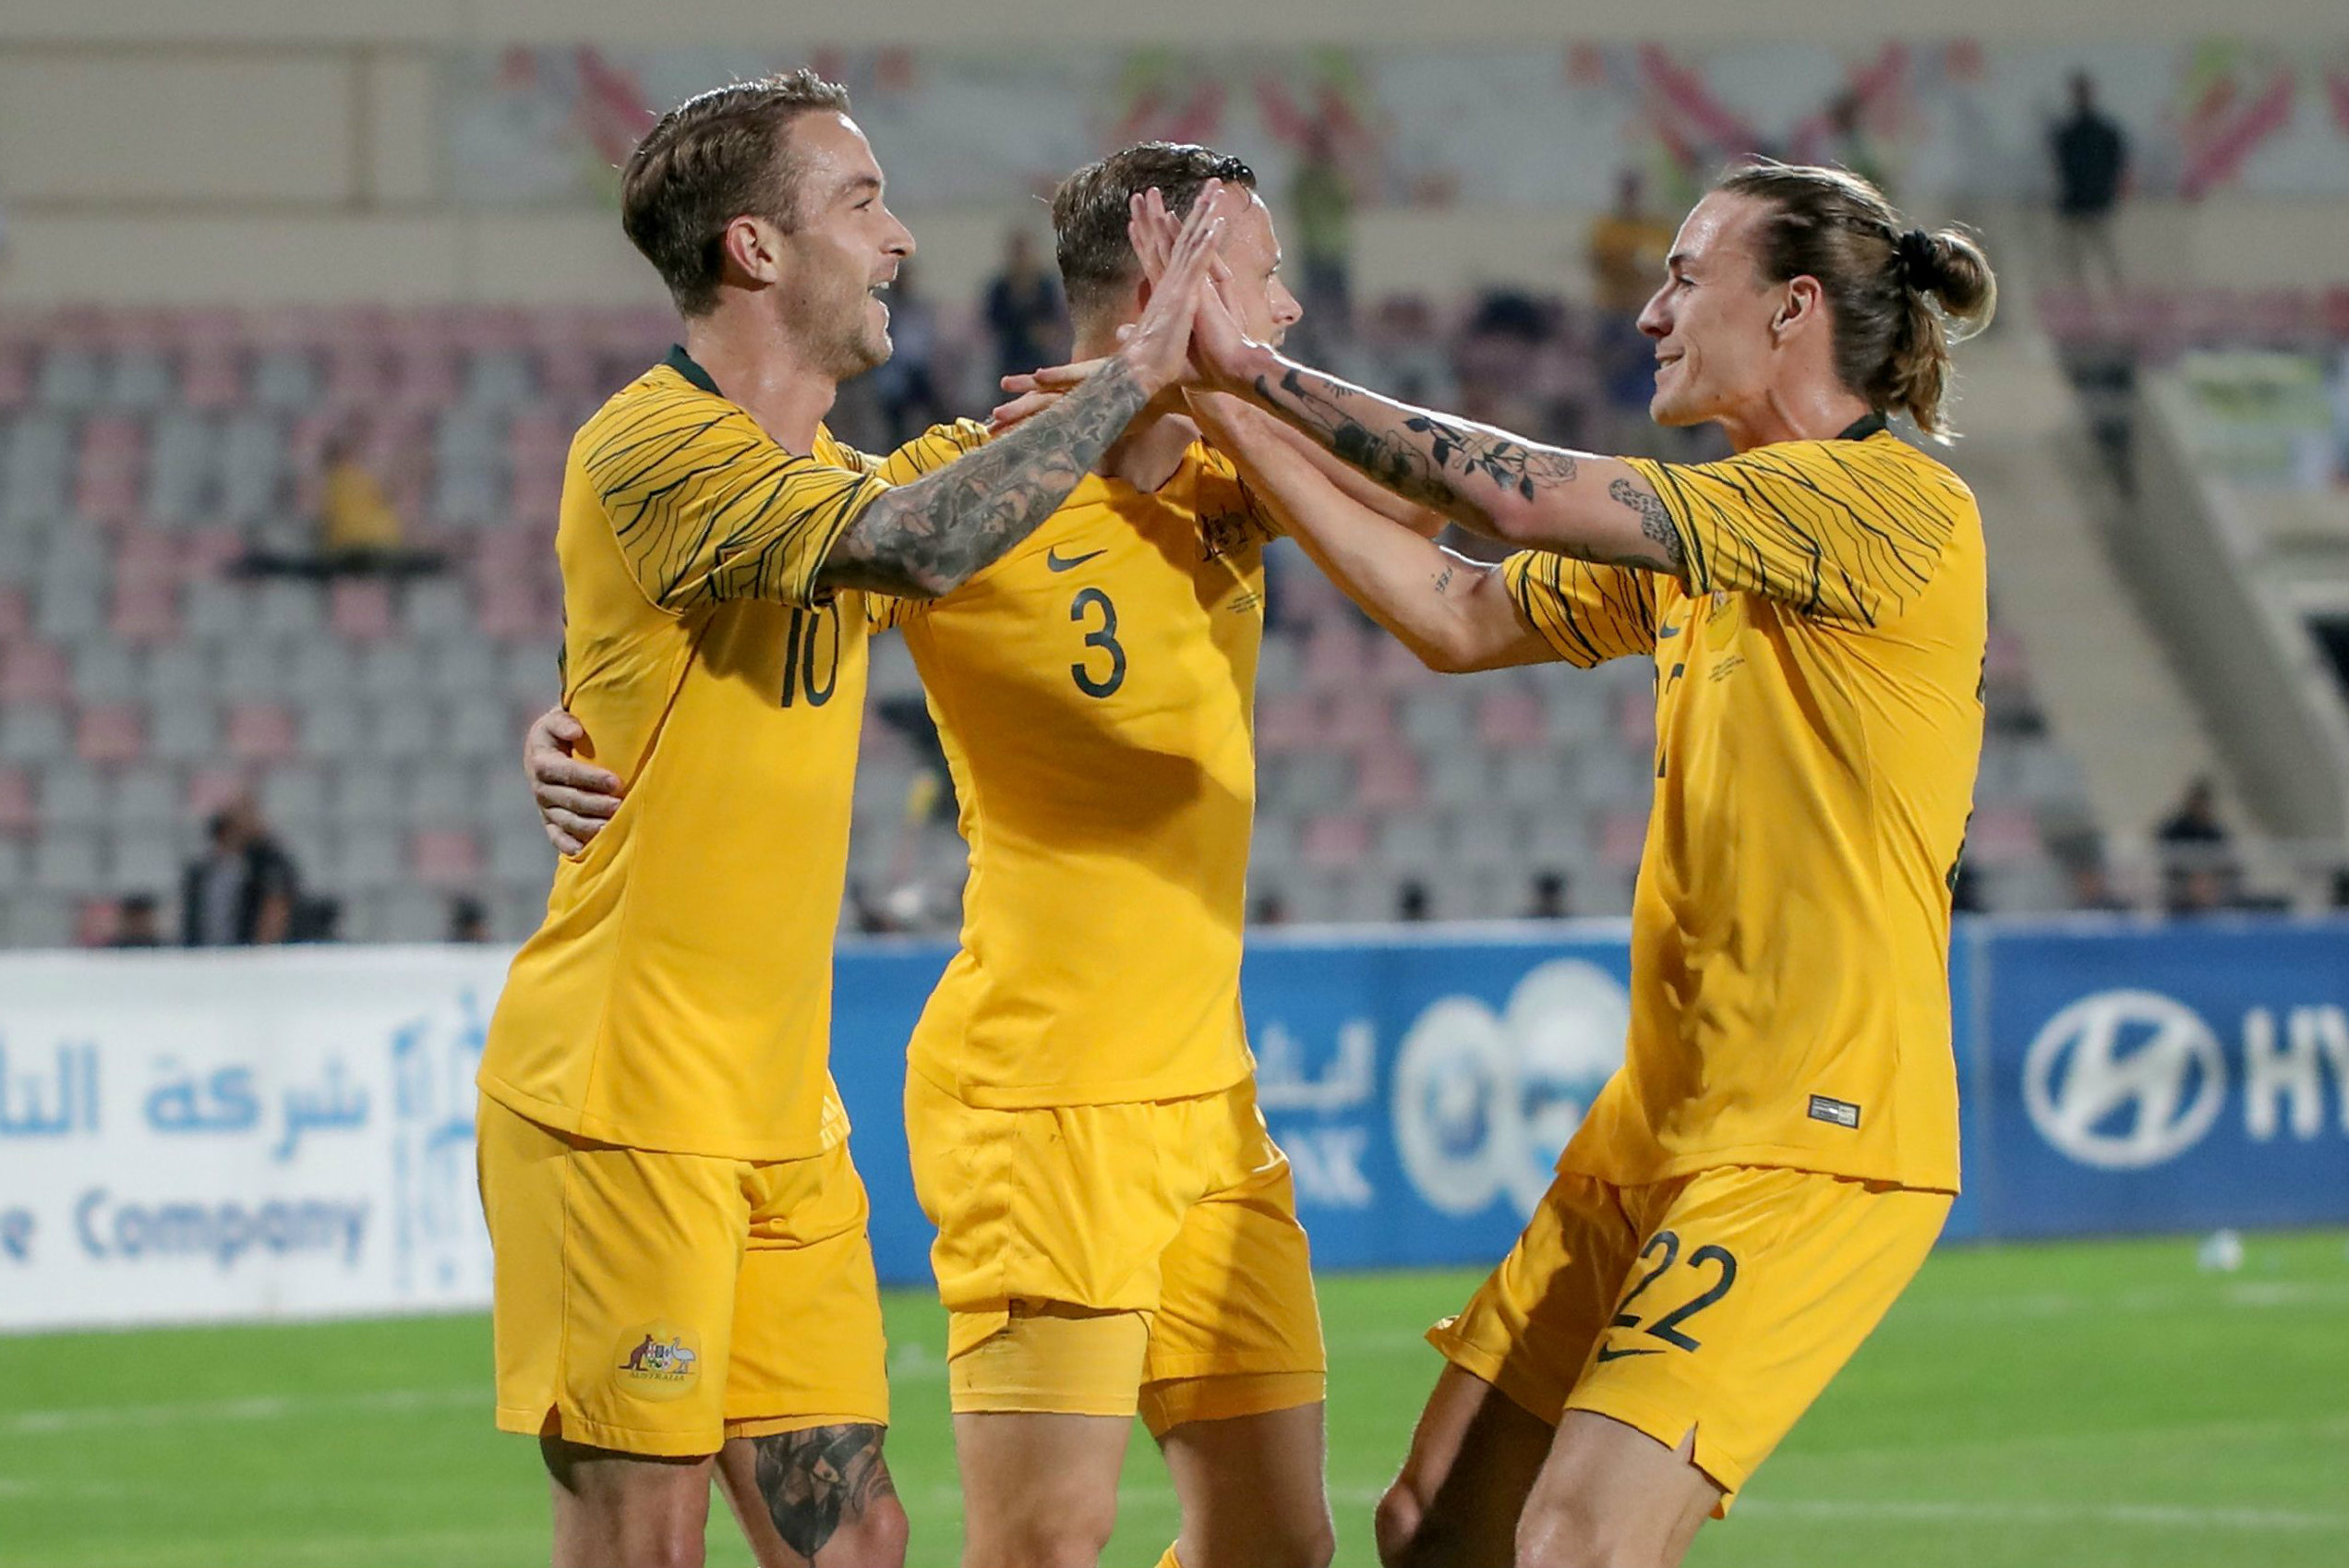 Caltex Socceroos on the rise in latest FIFA World Rankings